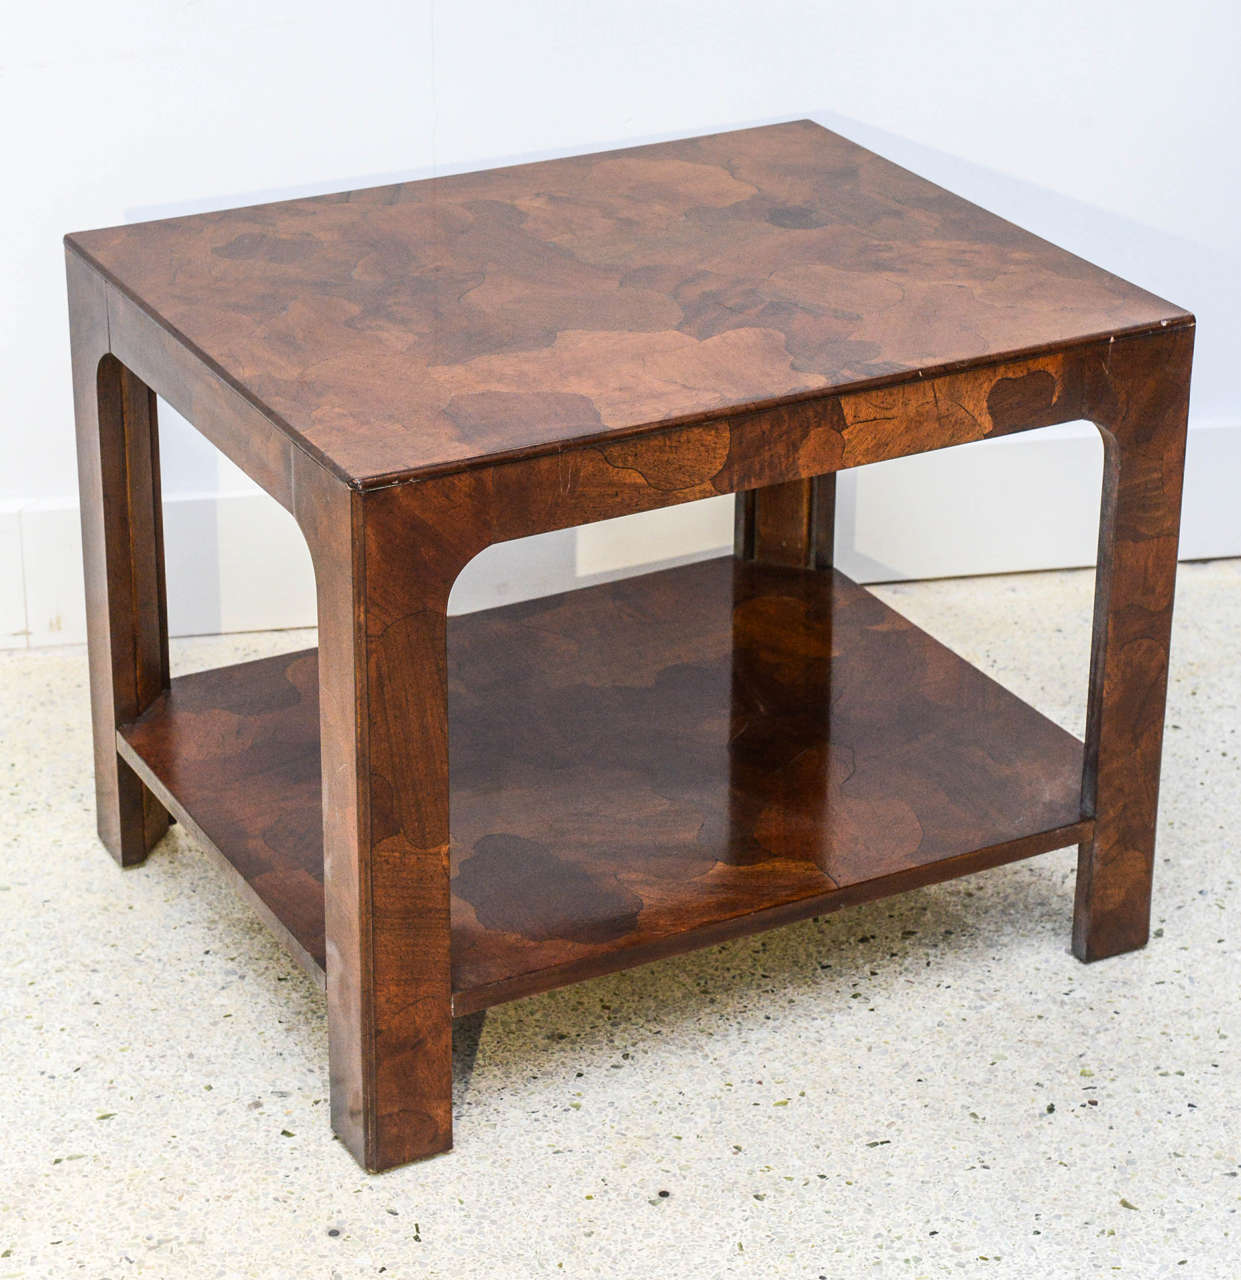 Mid-Century Modern American Modern Inlaid Mixed Wood Table, American of Martinsville For Sale